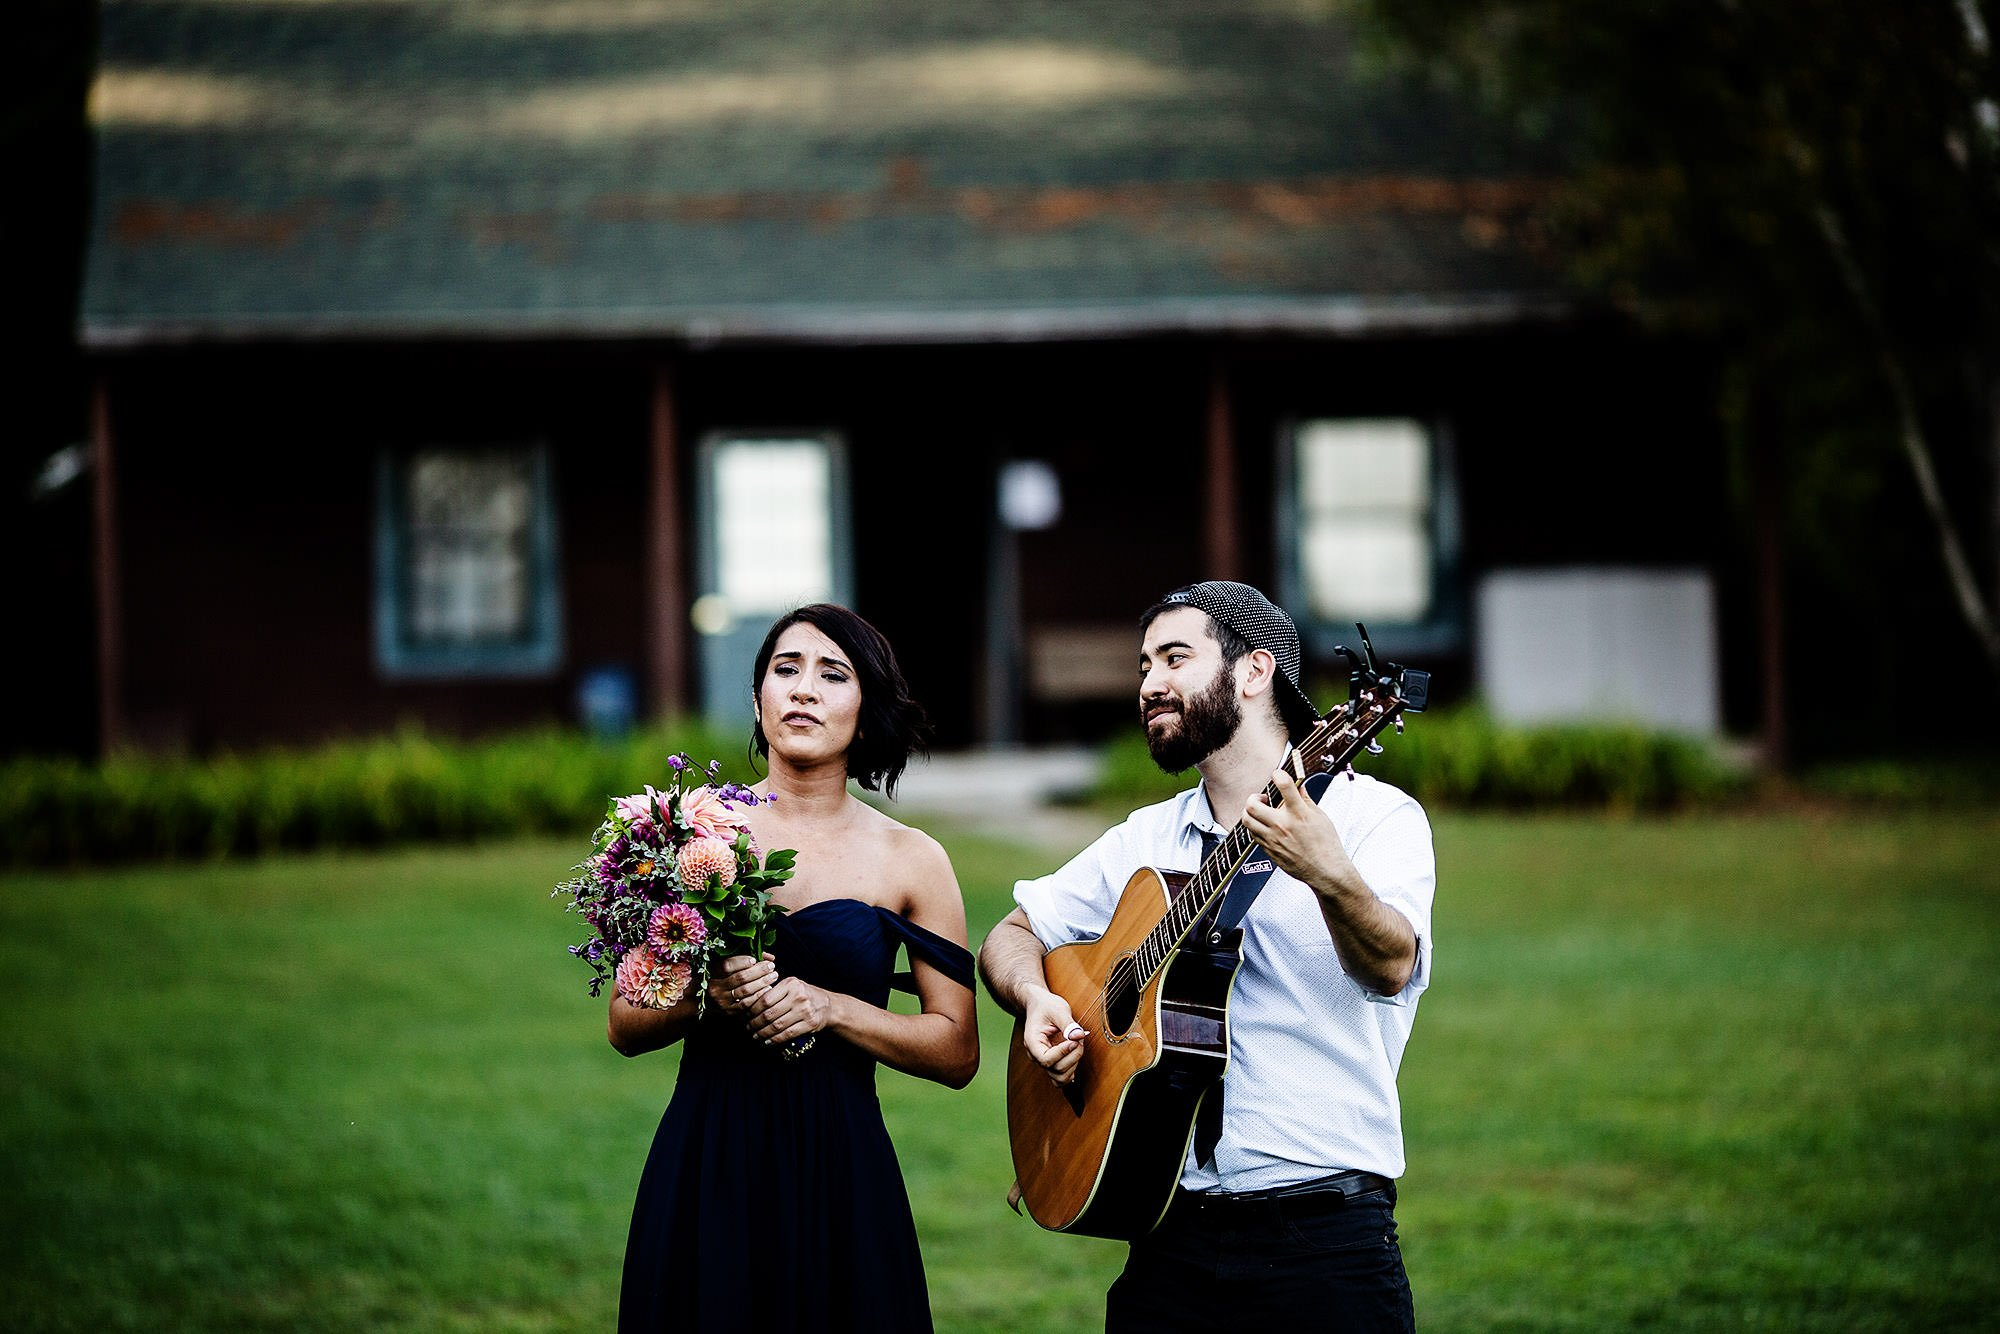 Guests play music and sing during cocktail hour of this Hulbert Outdoor Center wedding.